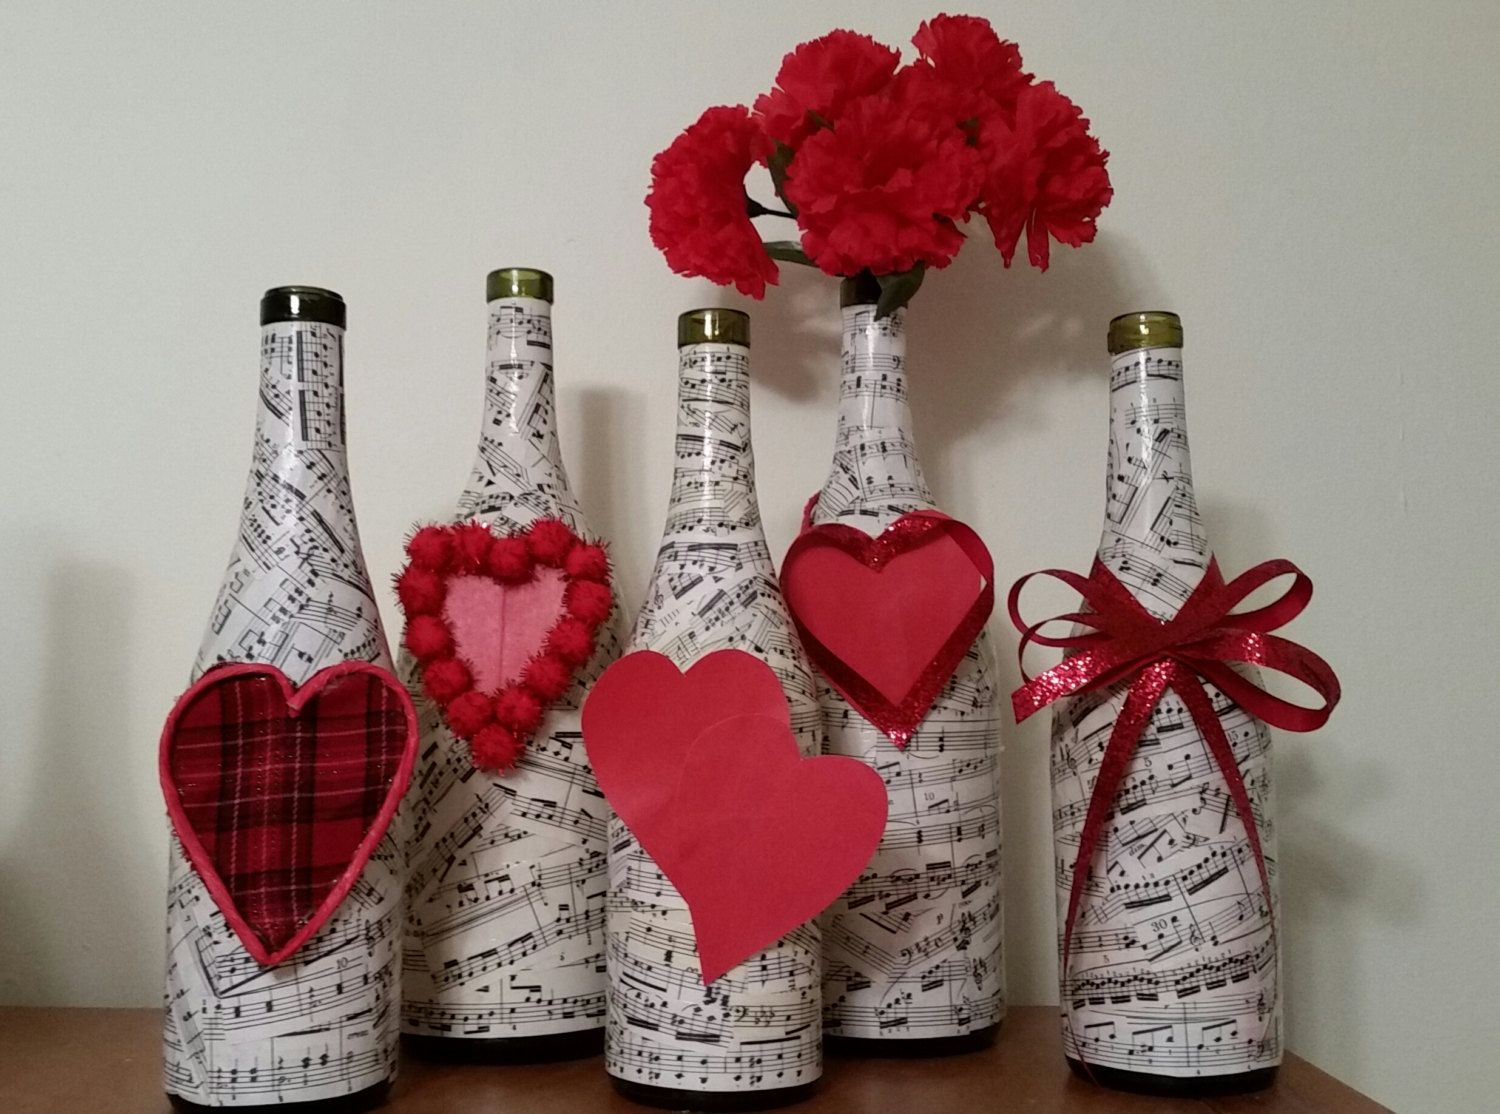 Pin By Mila On My Etsy Shop Www Etsy Com Shop Krismusicandmore Valentines Wine Bottle Crafts Valentines Wine Bottles Valentines Wine